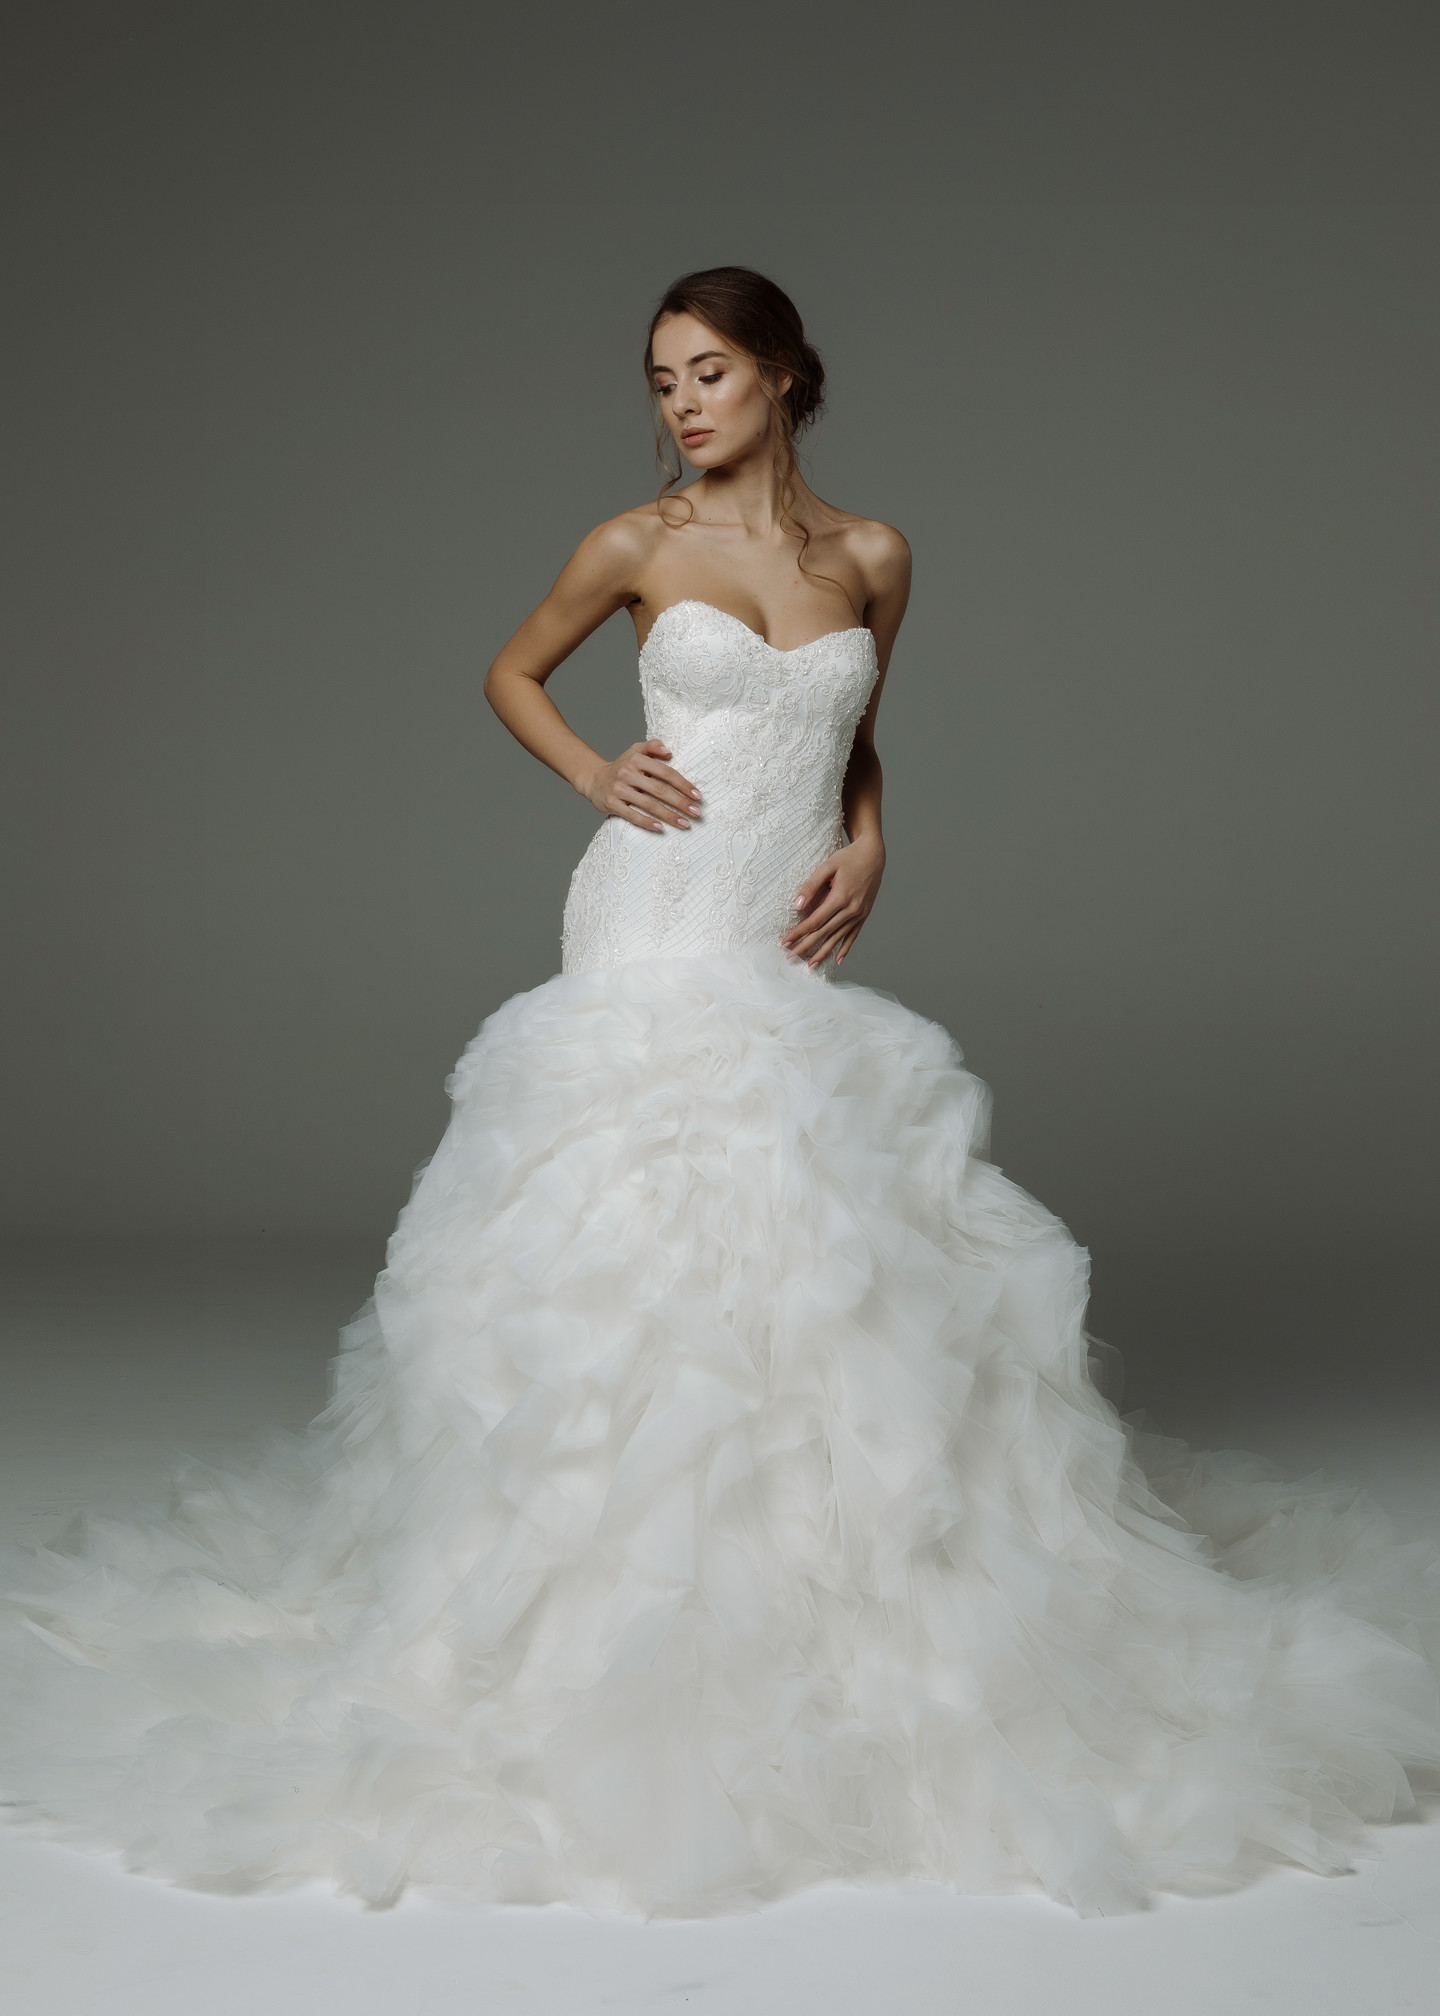 Jacqueline gown, 2019, couture, dress, bridal, off-white, tulle, embroidery, train, lacing corset, mermaid, discount, sale